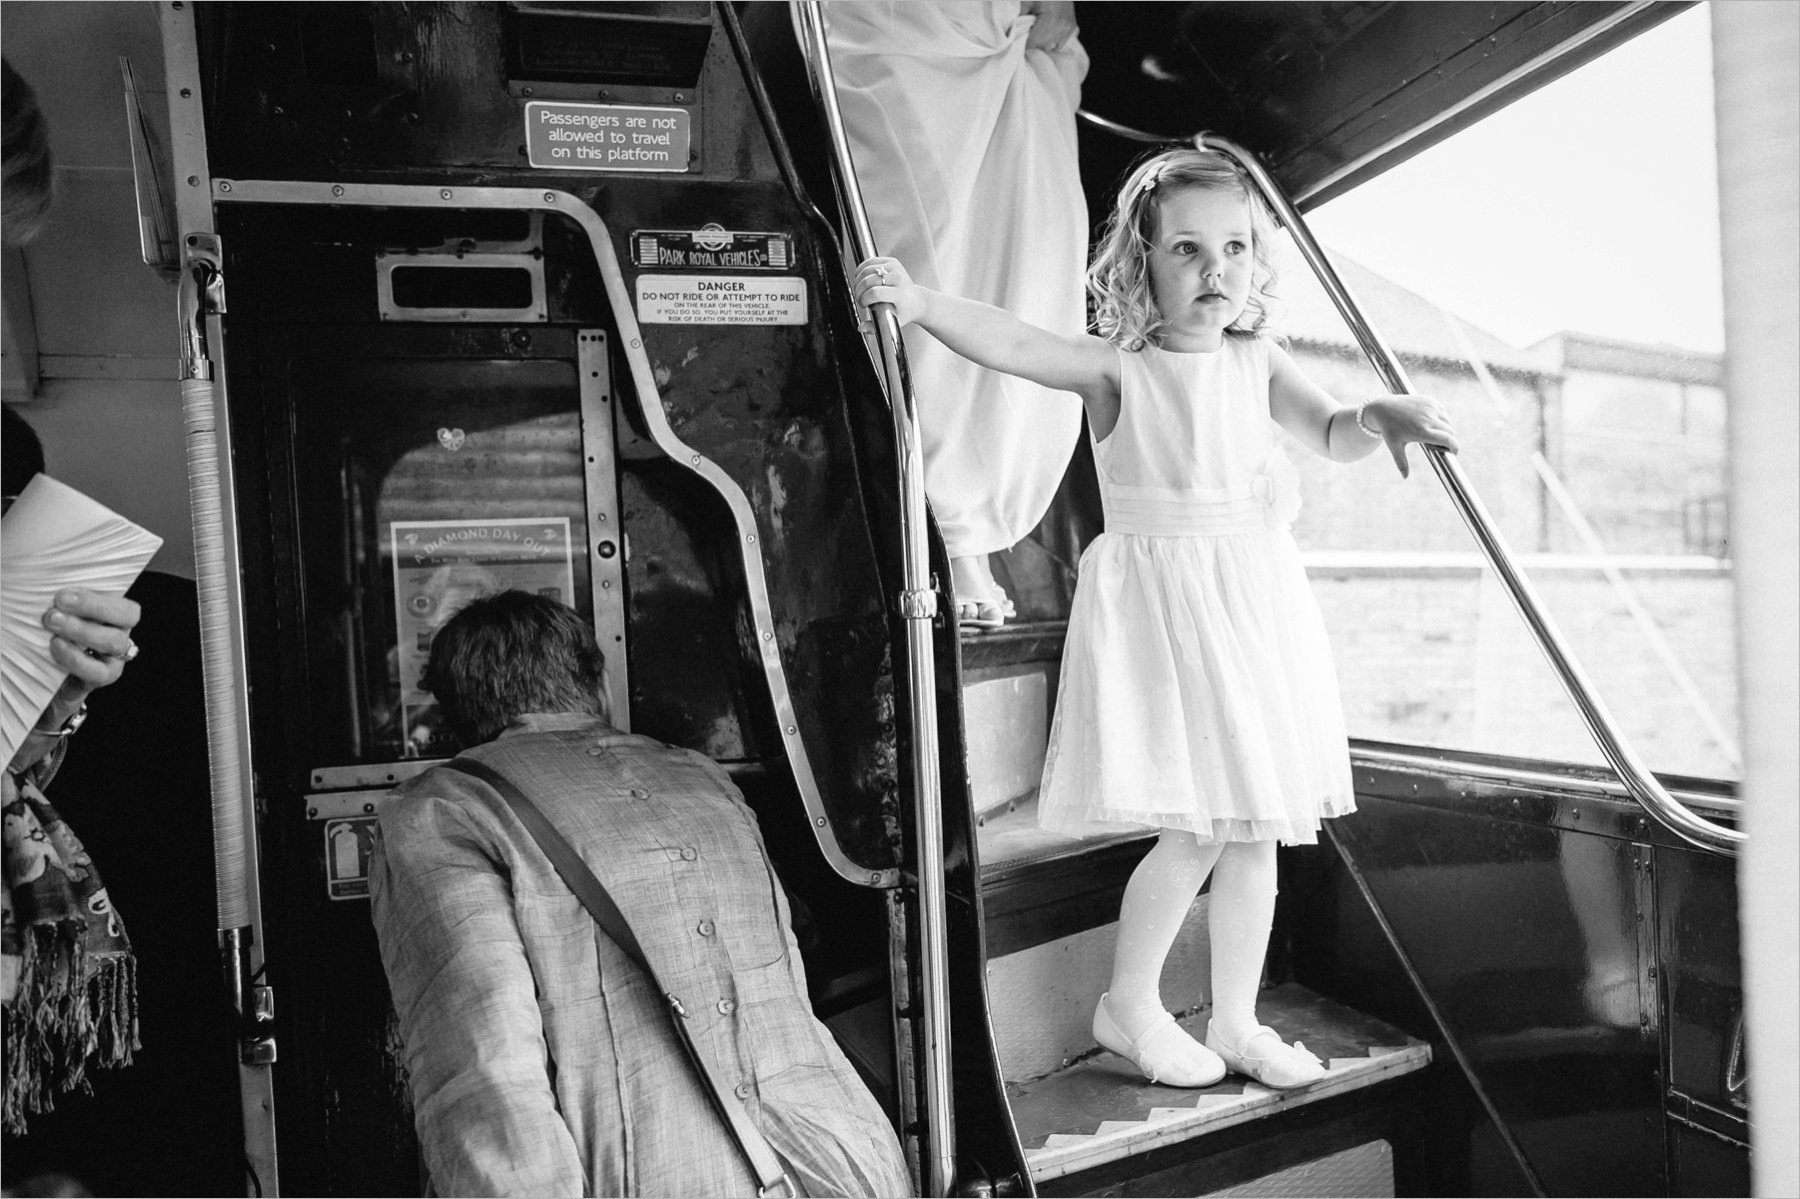 the flower girl departs the bus